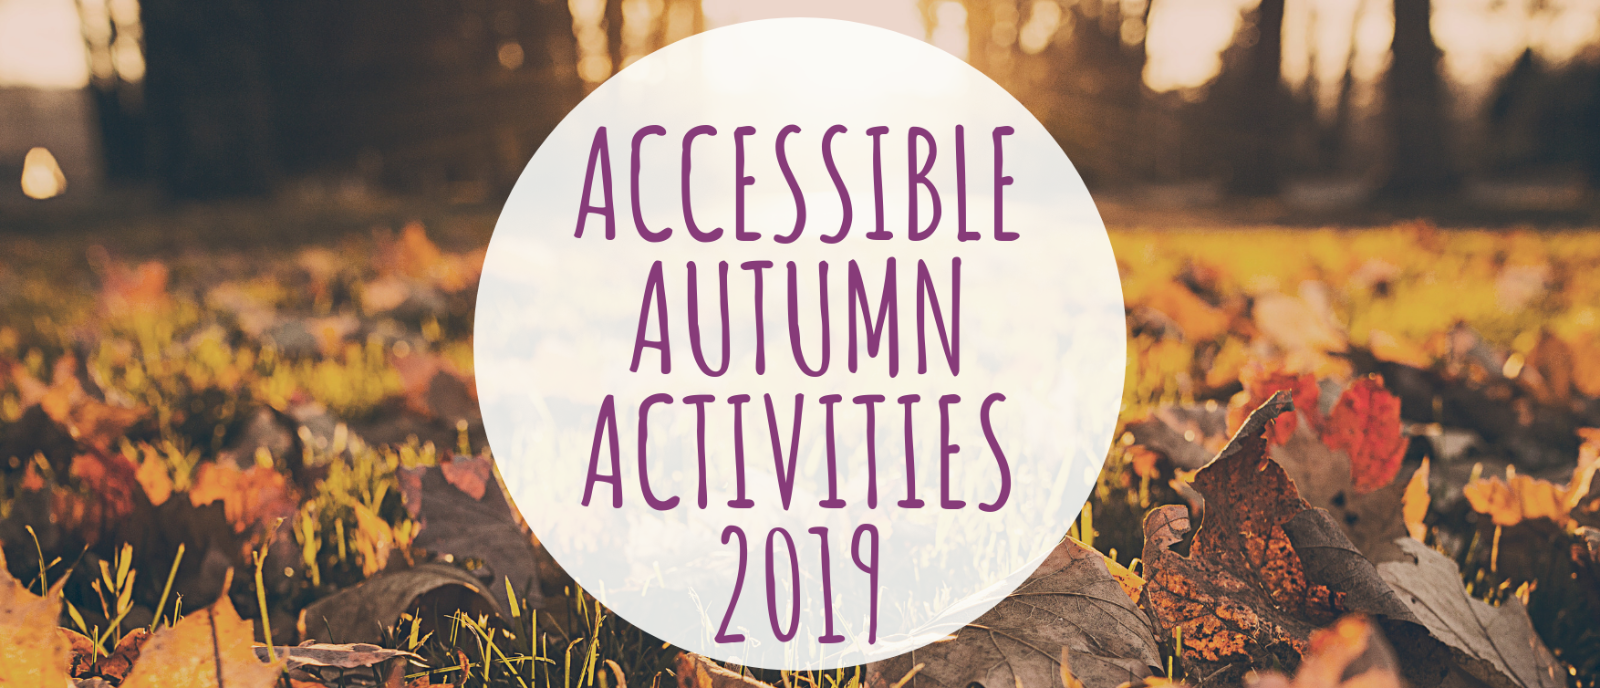 Accessible Autumn Activities for Children and Adults